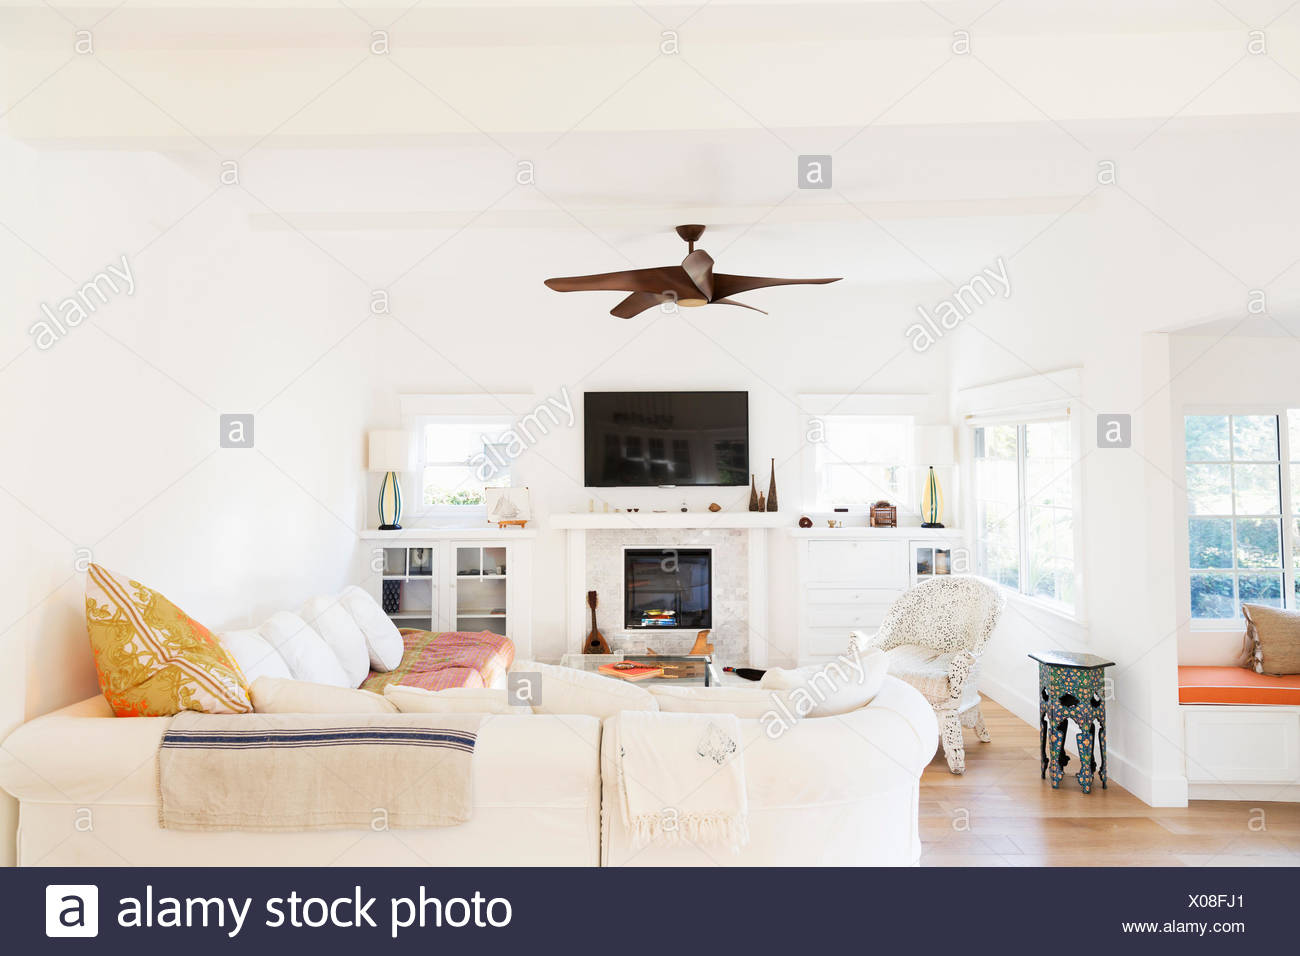 Ceiling Fan Home Ceiling Stock Photos & Ceiling Fan Home Ceiling ...